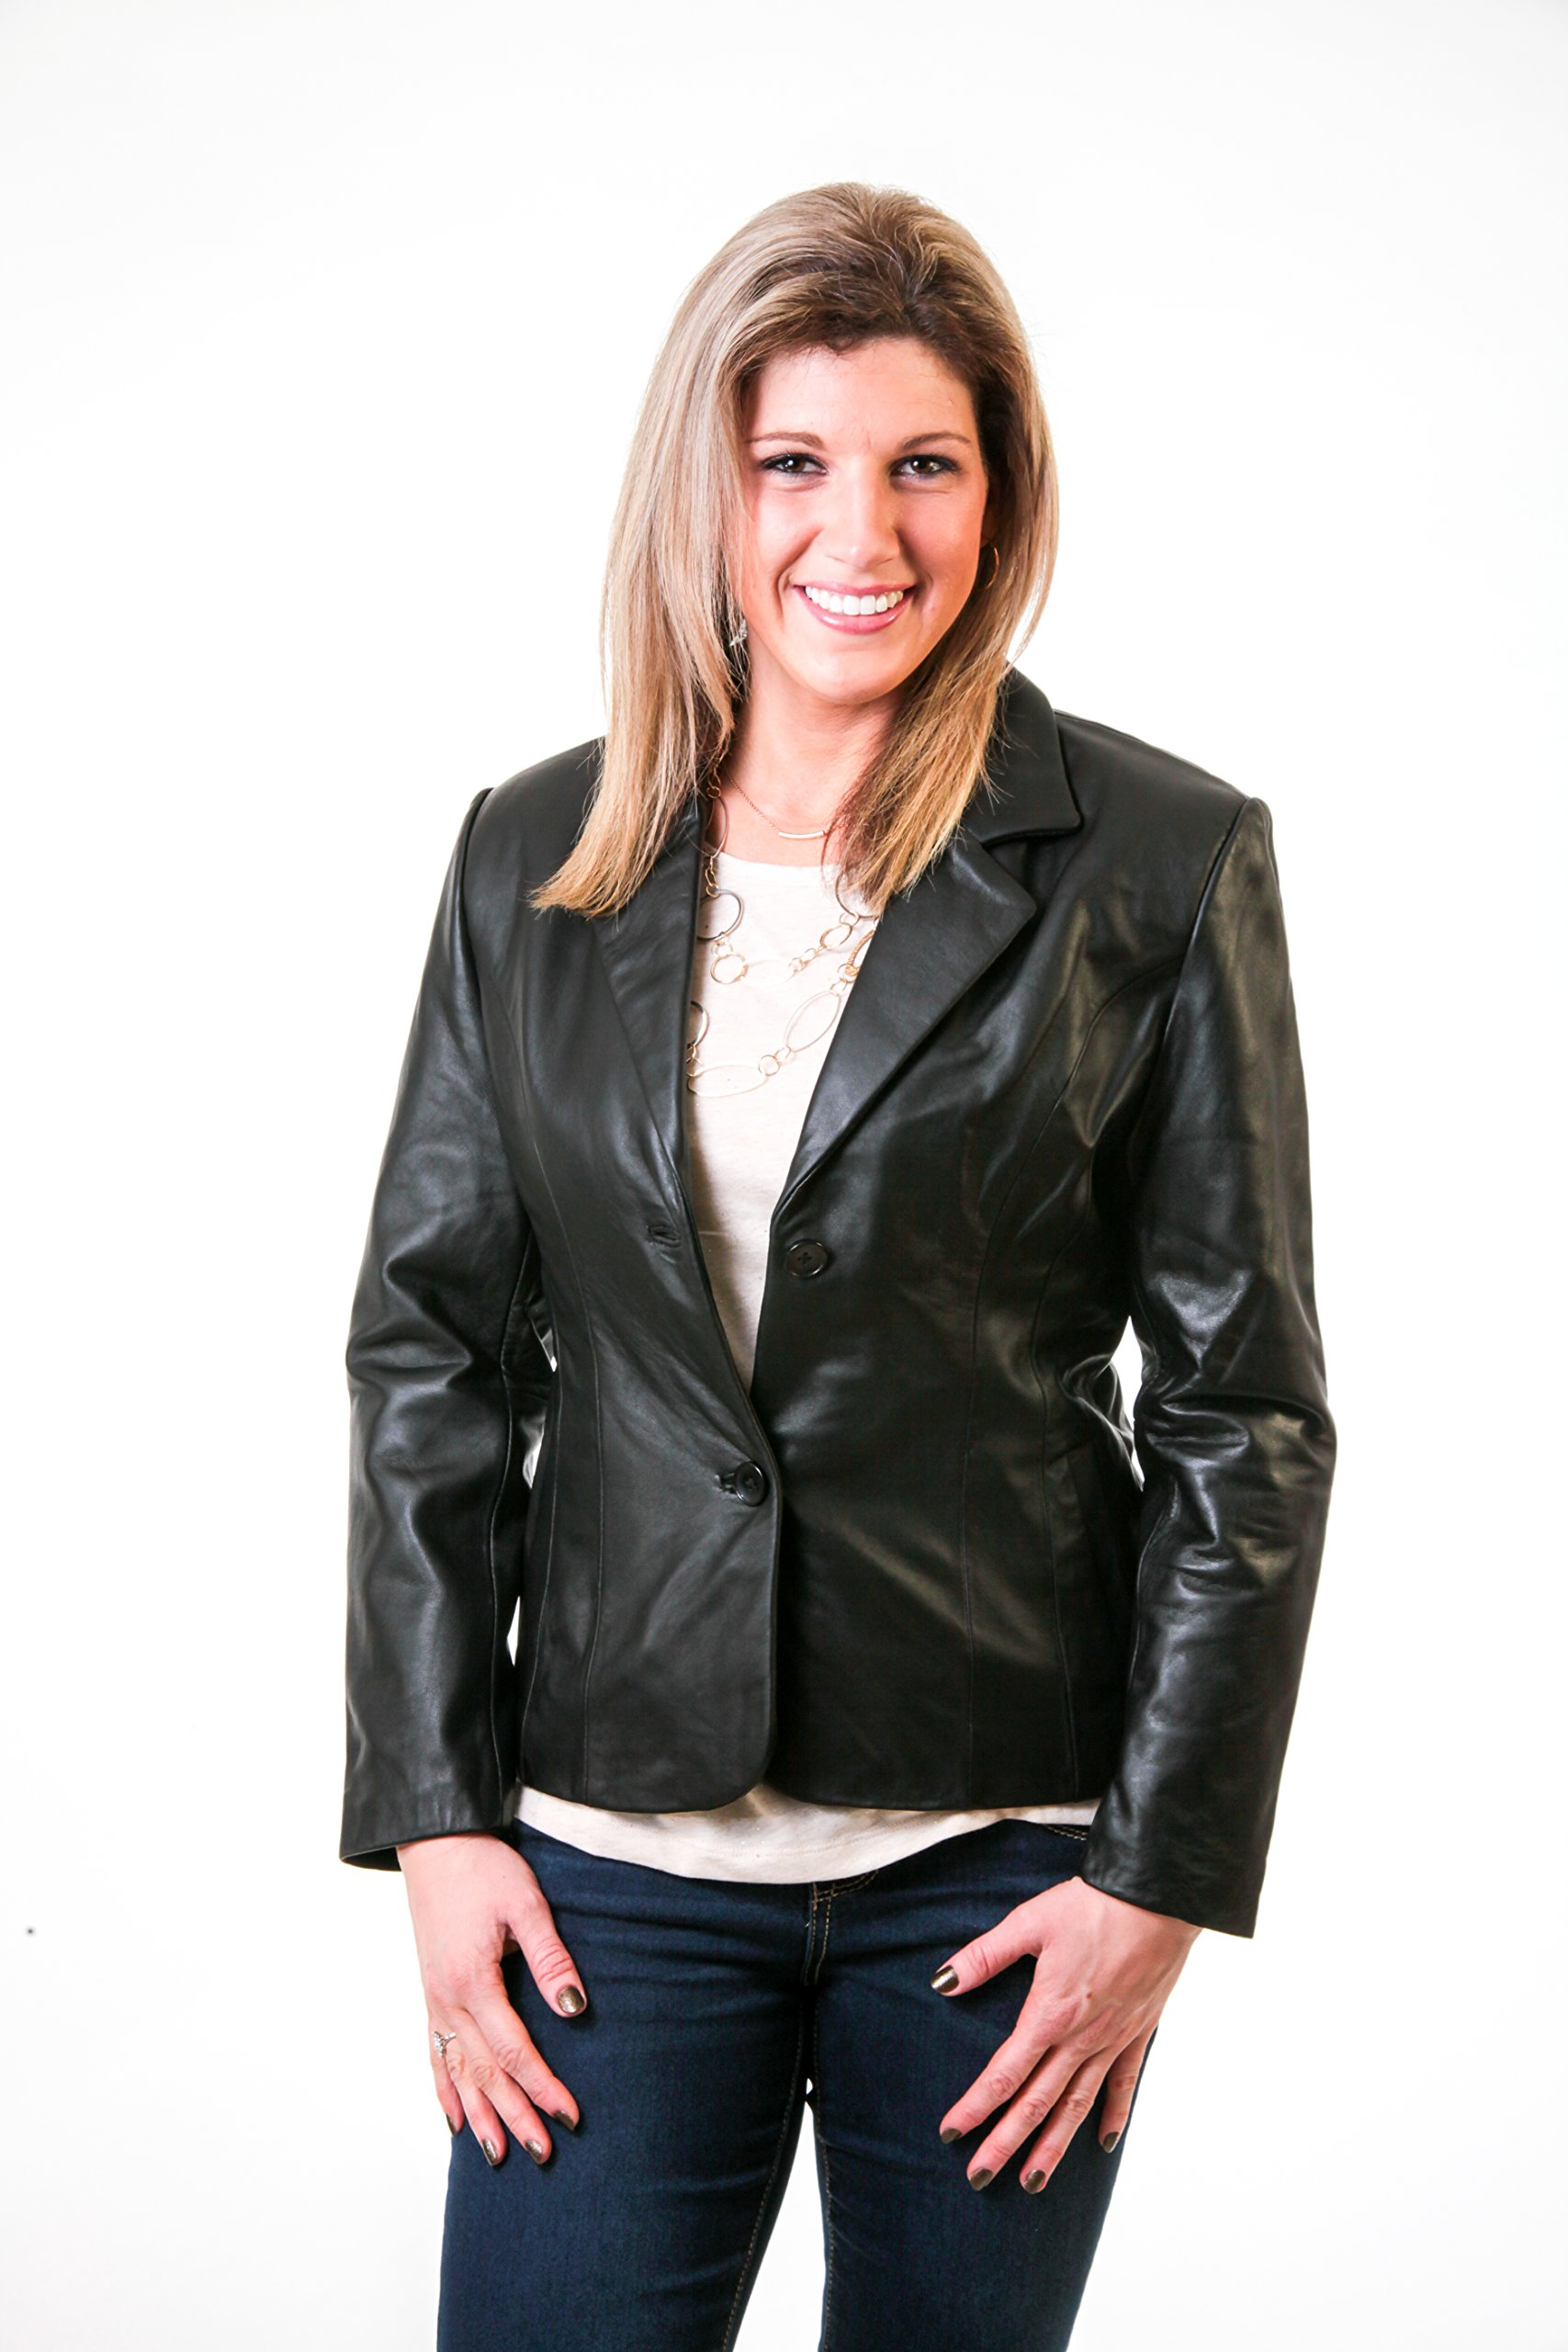 Lee Cobb Women's Genuine Smooth Lambskin Leather Blazer Jacket Button up size 6 by Lee-Cobb (Image #2)